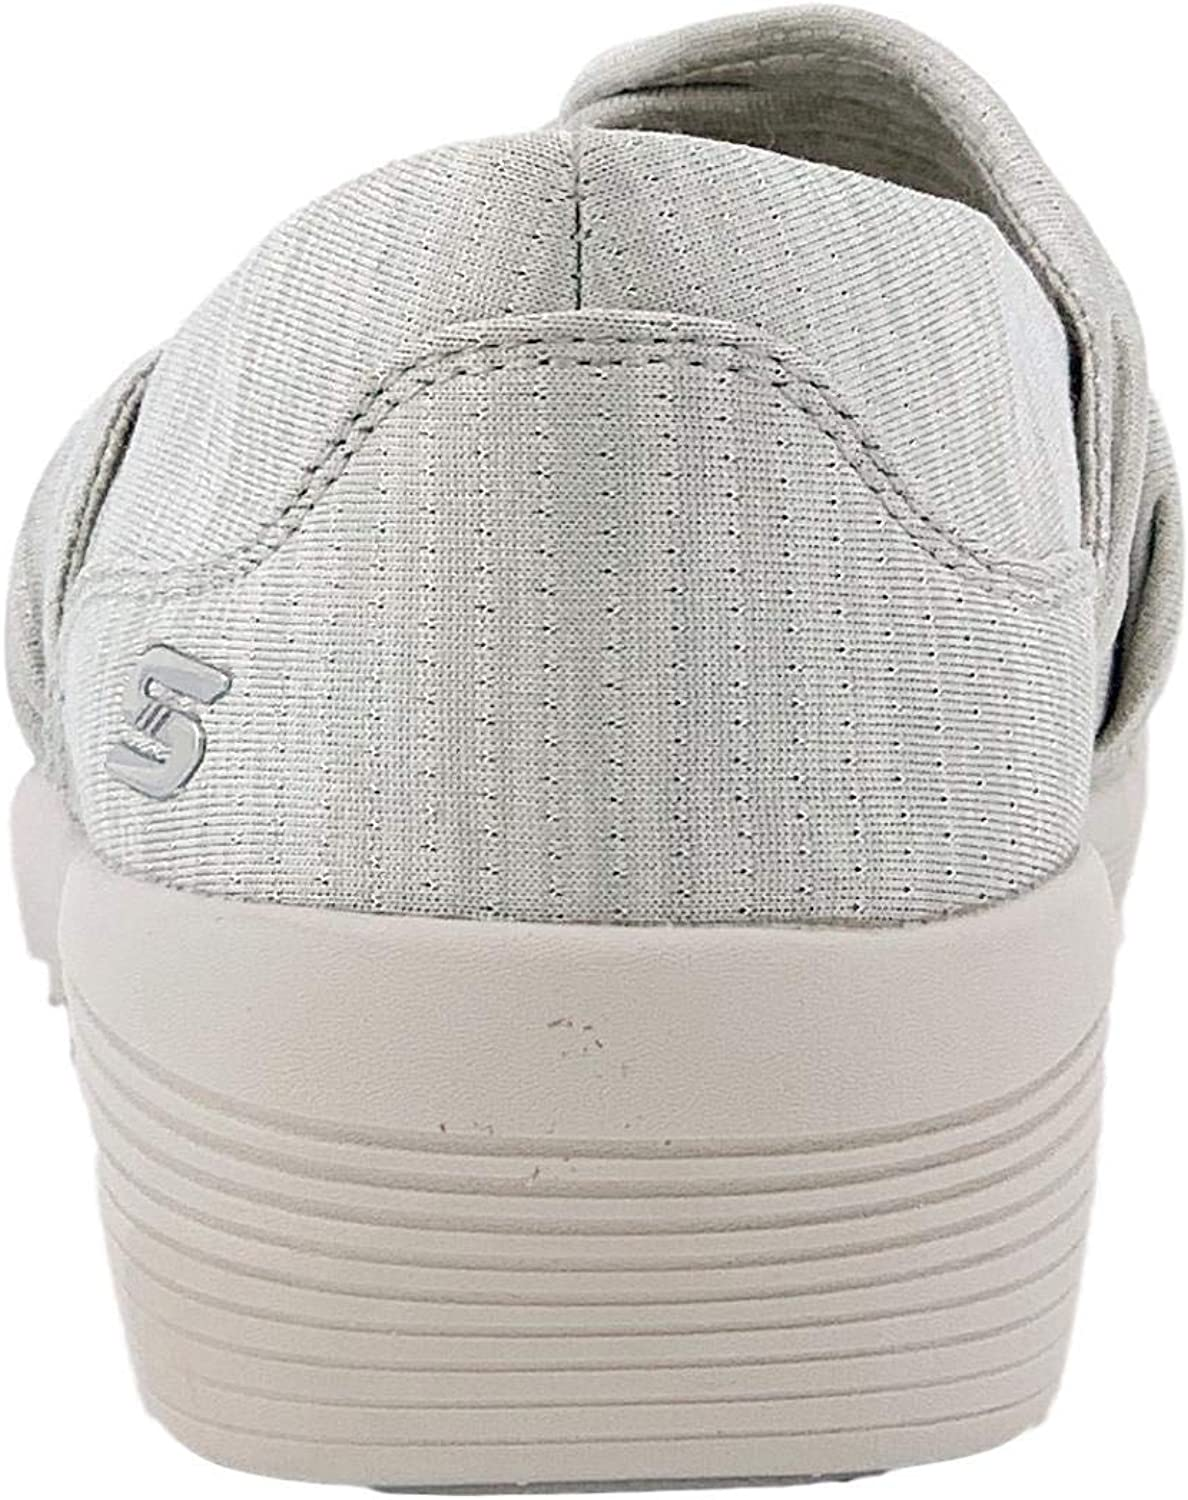 Skechers Arya Knot My Problem Womens Slip On Skimmer Sneaker Taupe